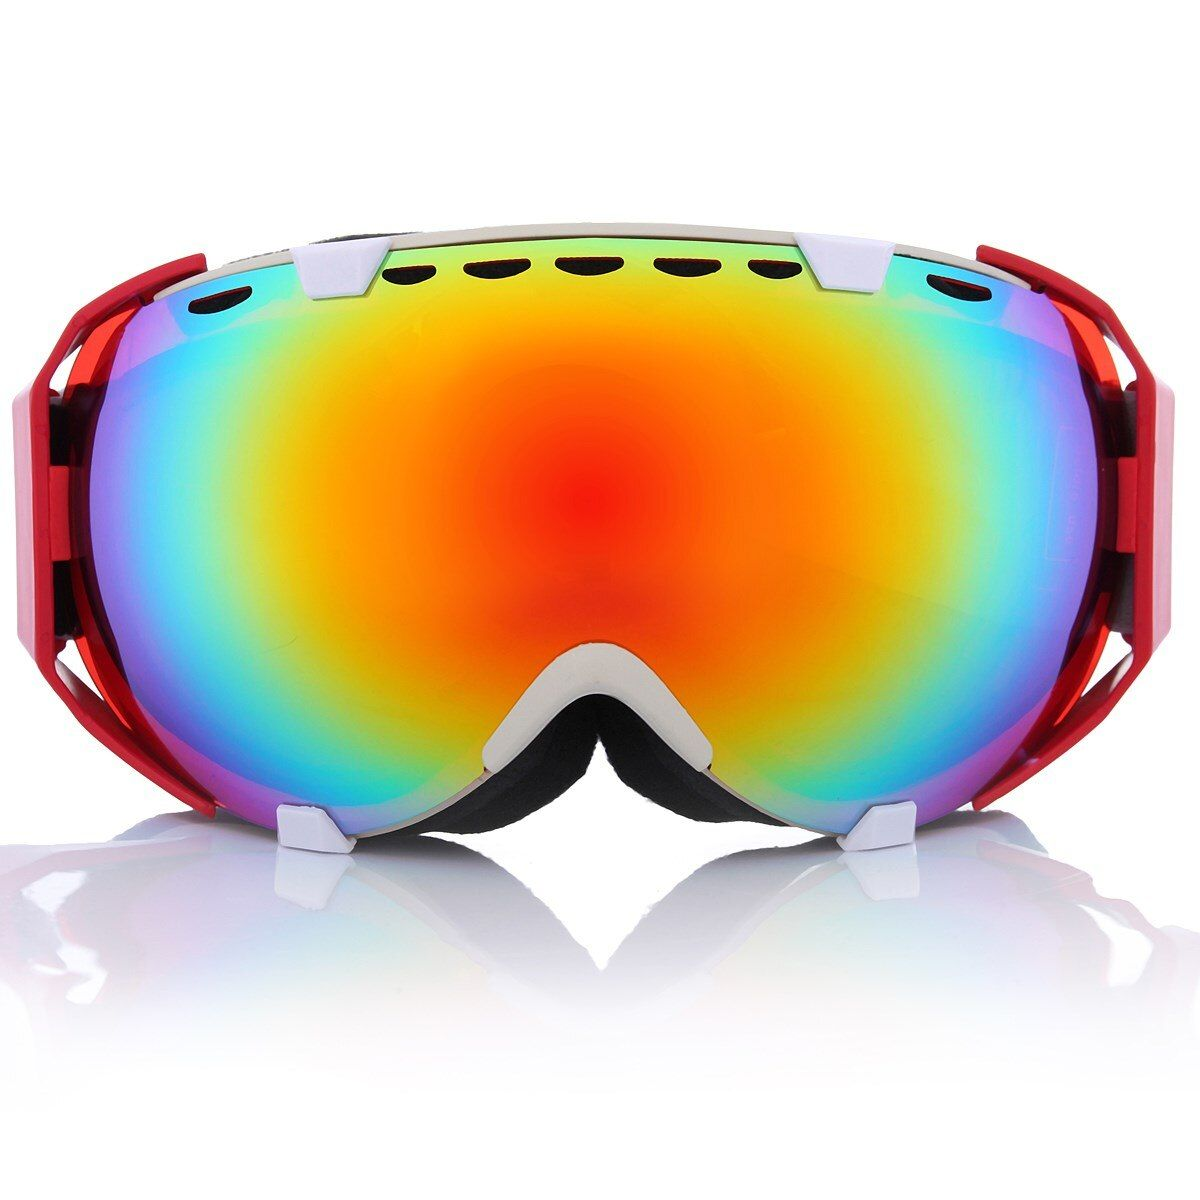 11 Colors Professional Unisex Adult Snowboard Ski Goggles Anti Fog UV Dual Lens Glass Skiing Eyewear